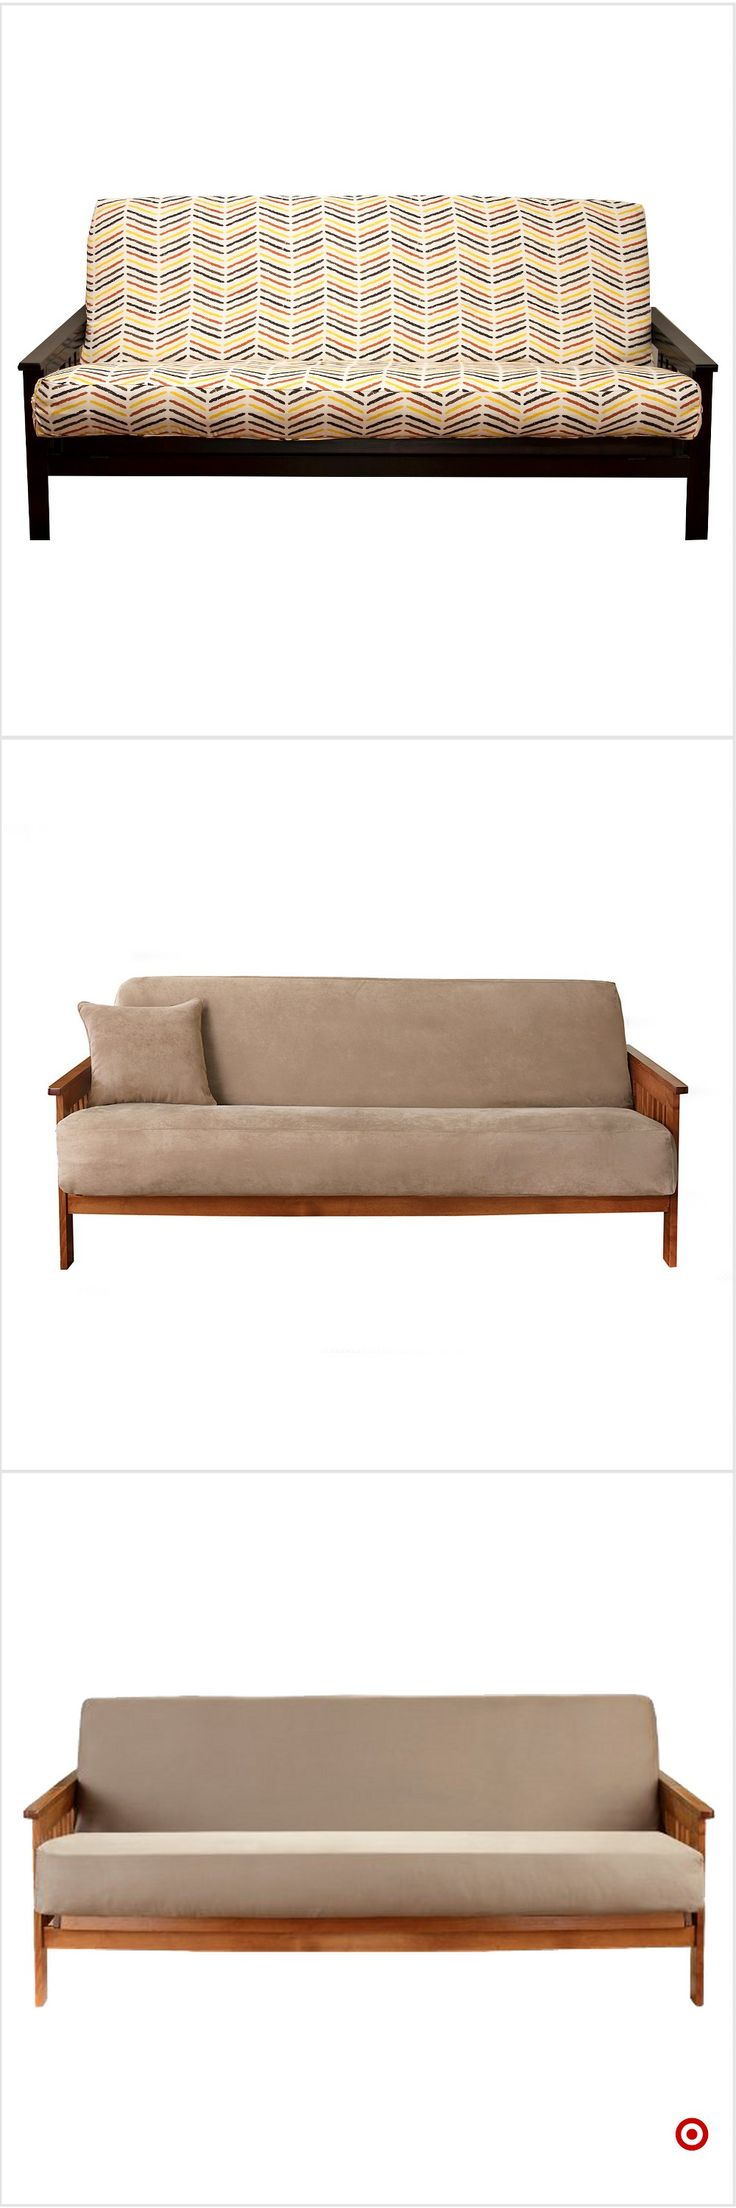 Shop Target for futon cover you will love at great low prices. Free shipping on orders of $35+ or free same-day pick-up in store.